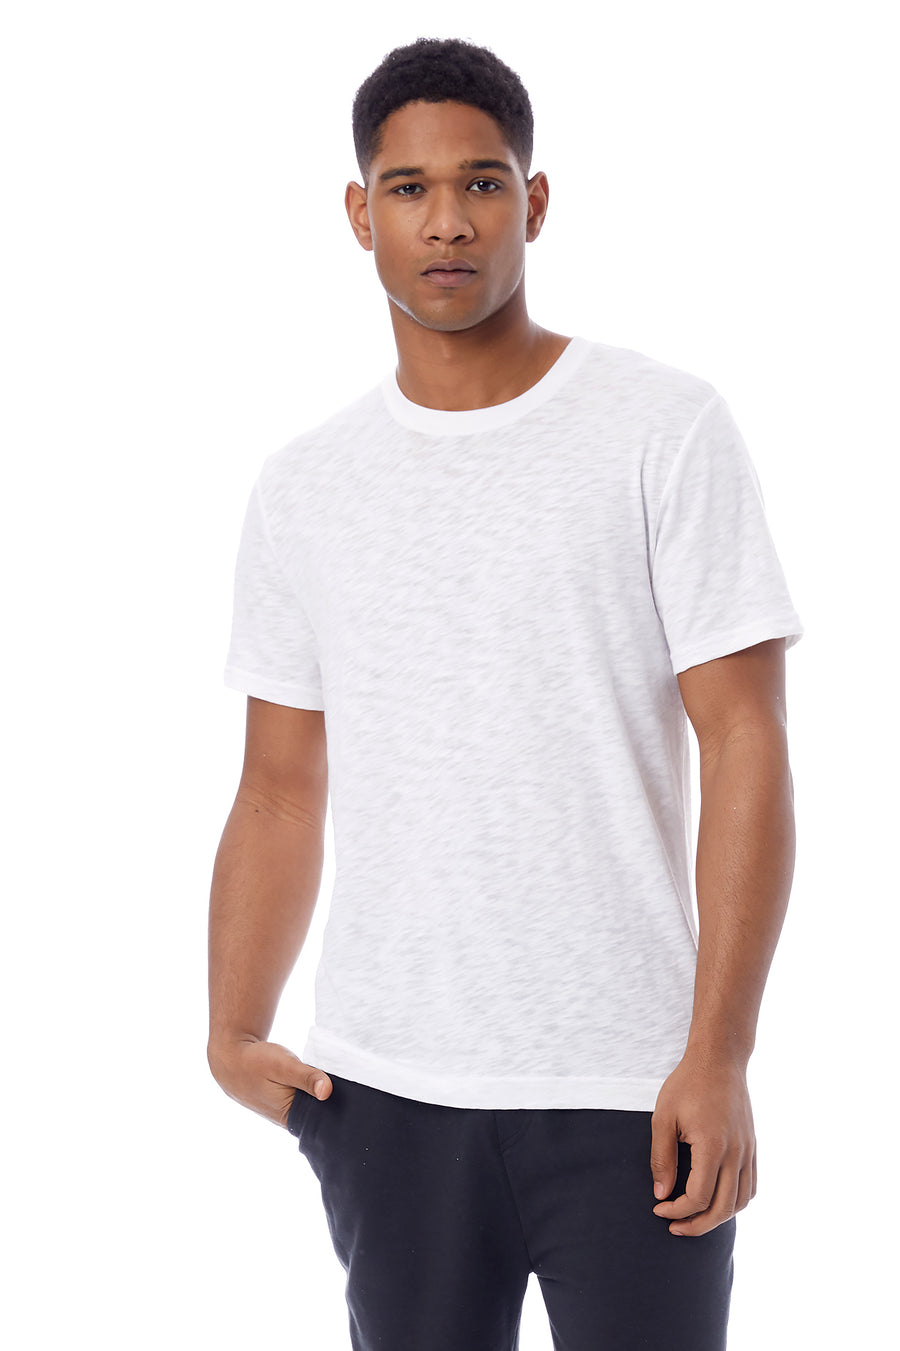 Fillmore Organic Cotton Slub T-Shirt - White